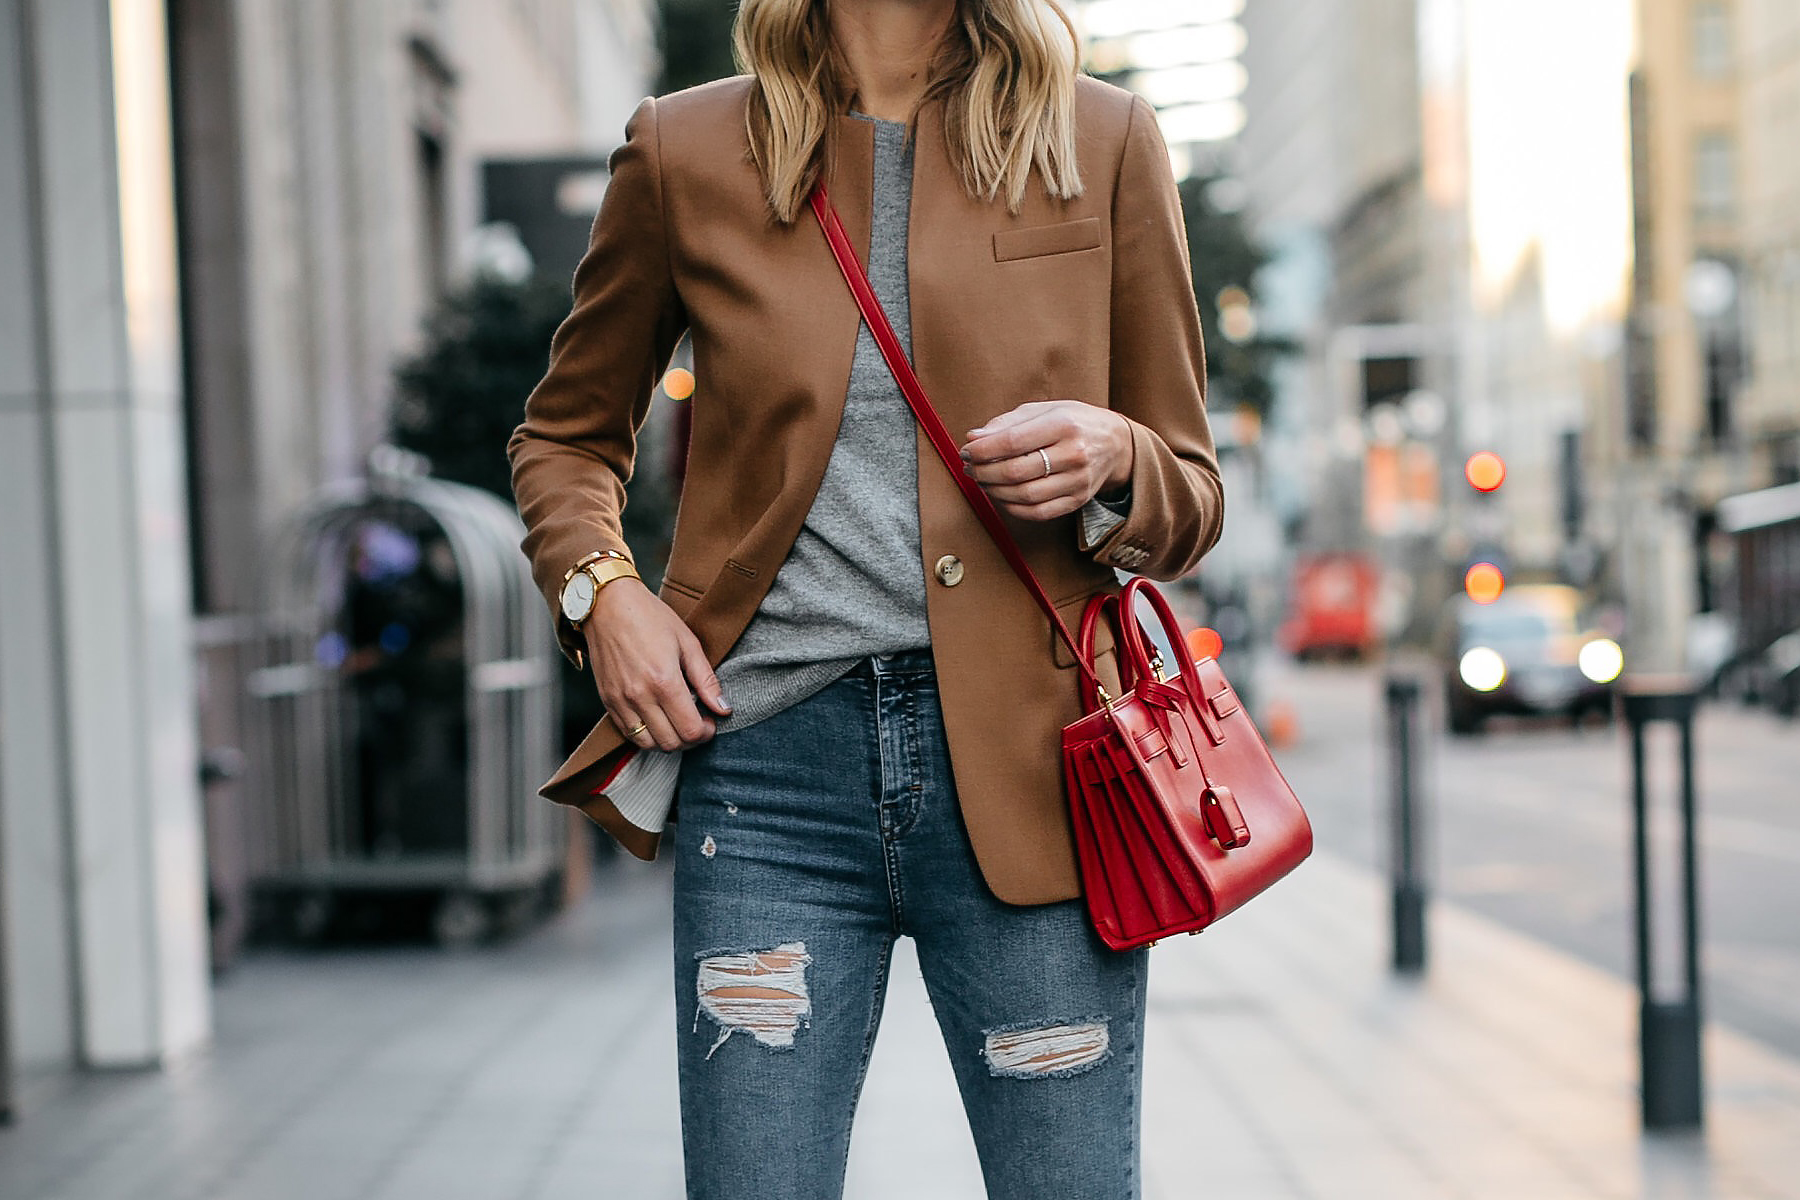 Camel Blazer Ripped Denim Jeans Red Bag Fashion Jackson Dallas Blogger Fashion Blogger Street Style